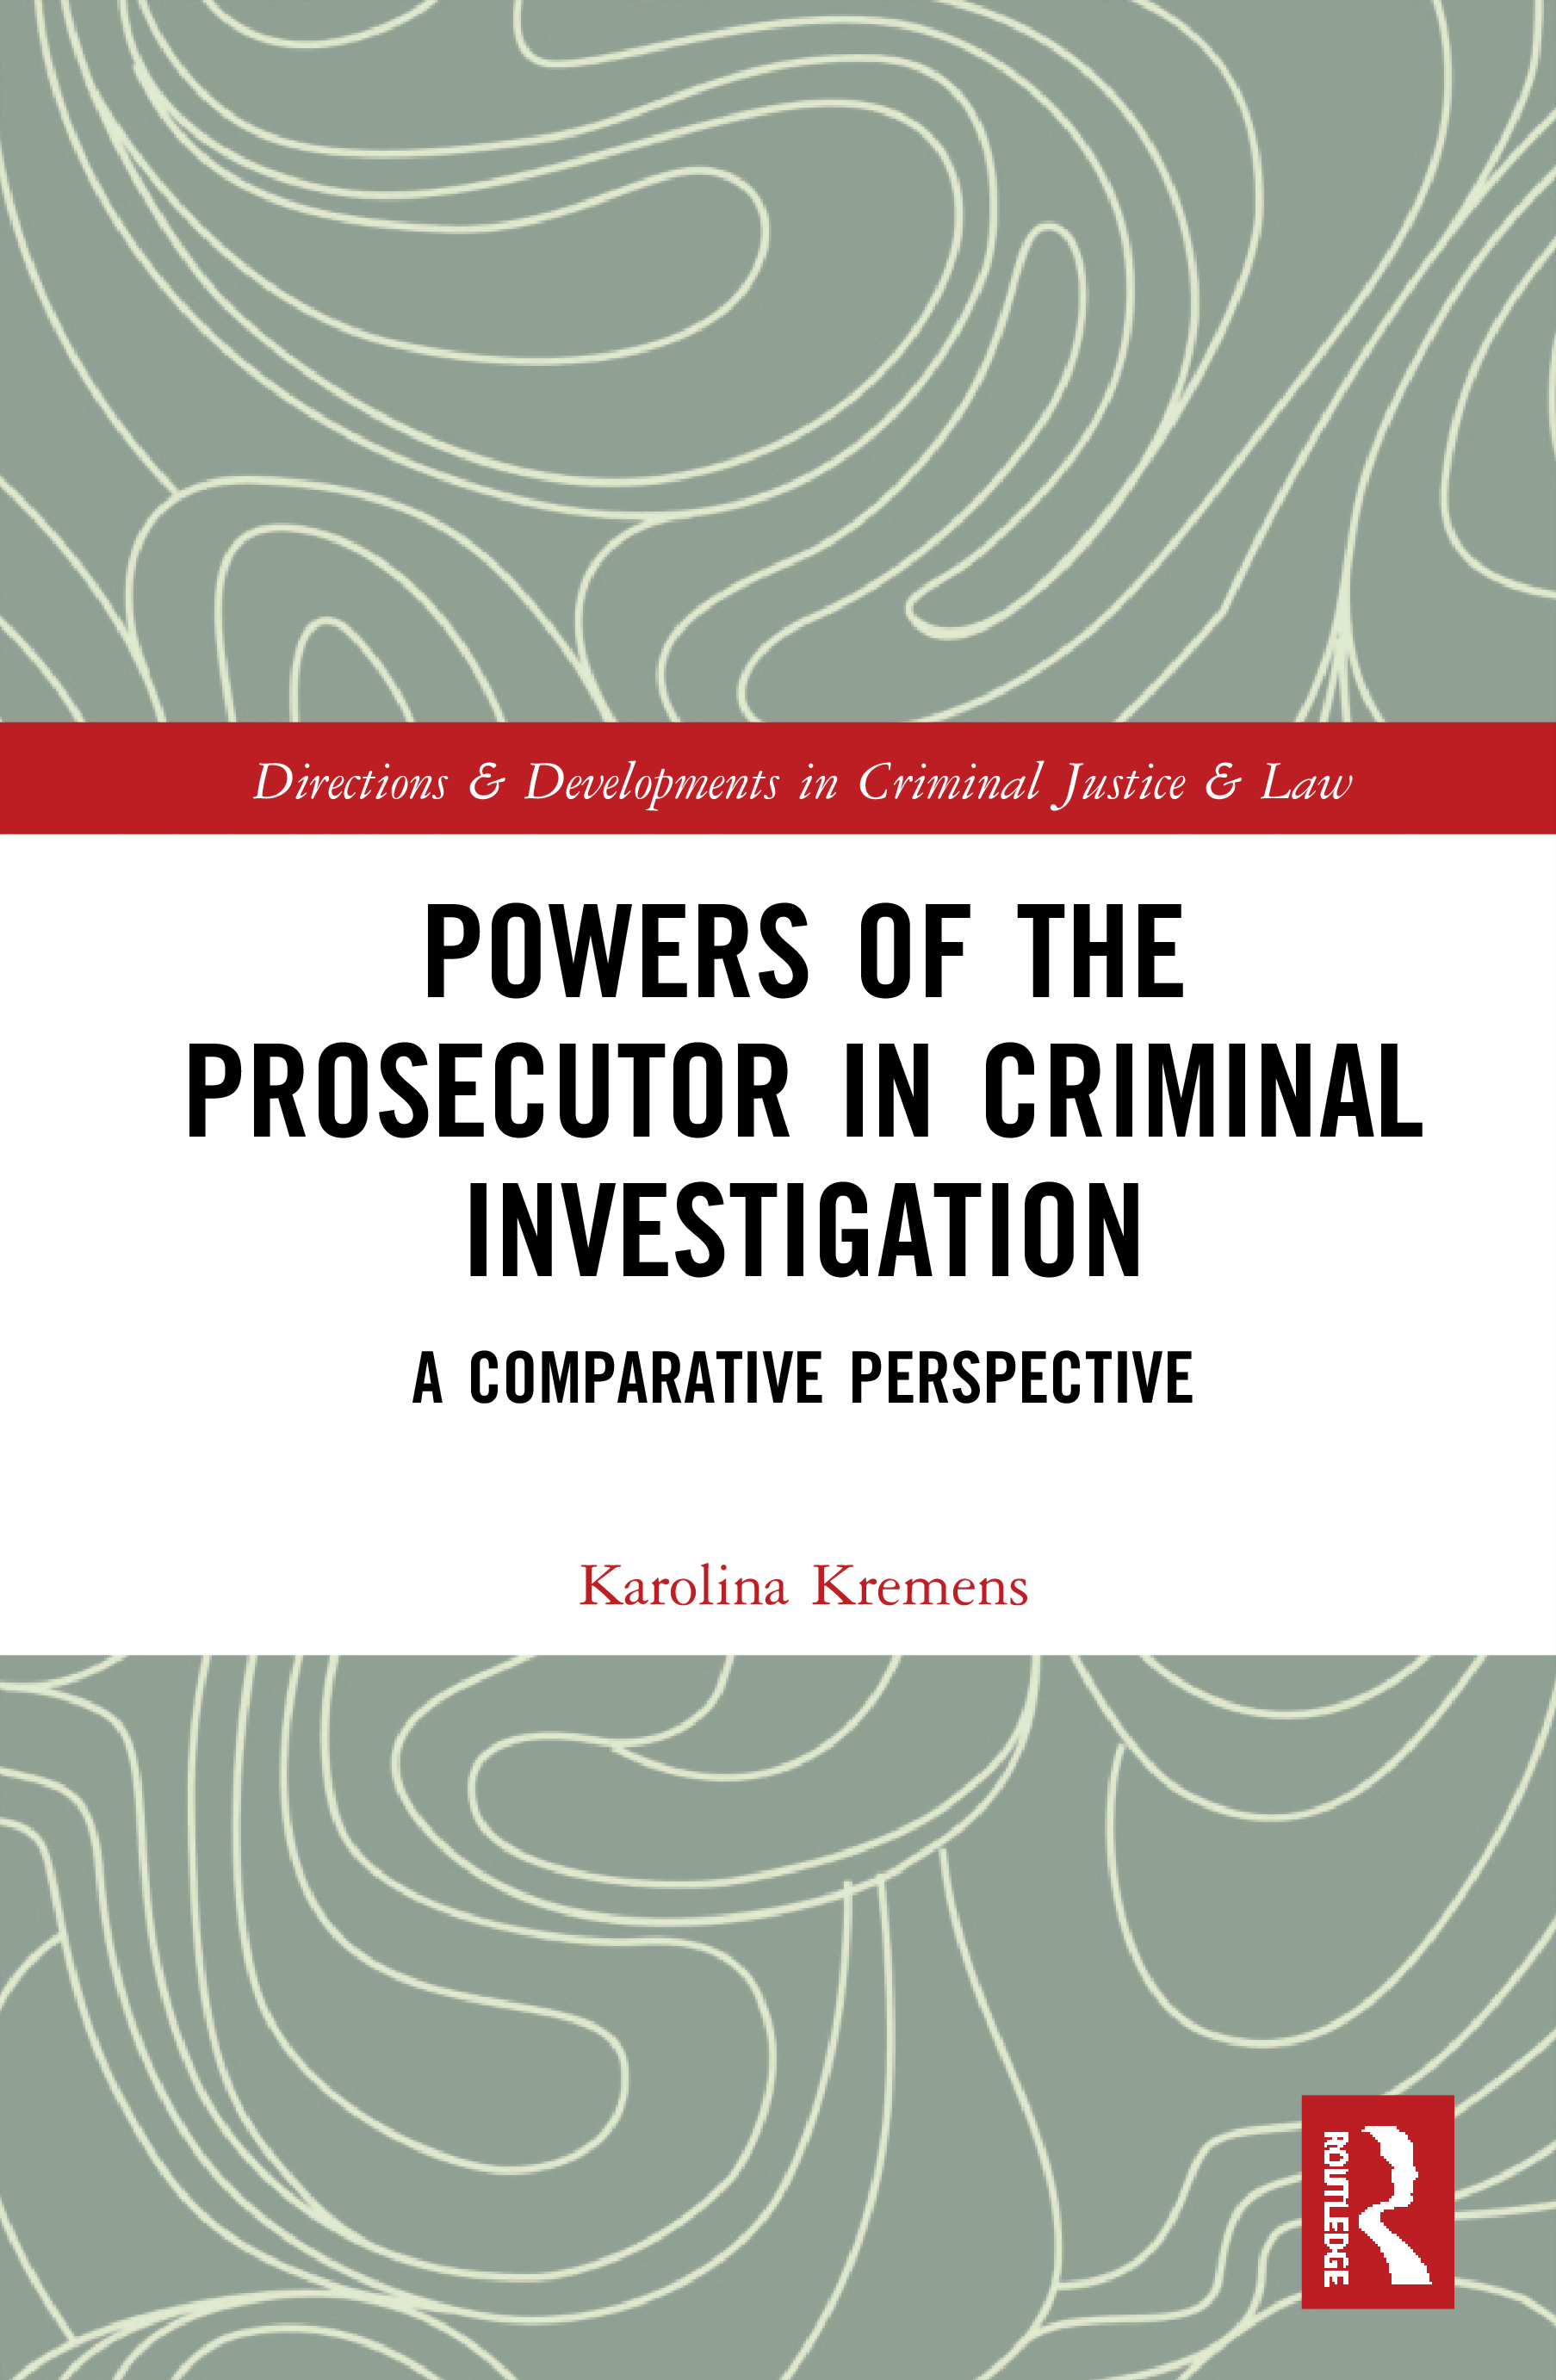 Powers of the Prosecutor in Criminal Investigation